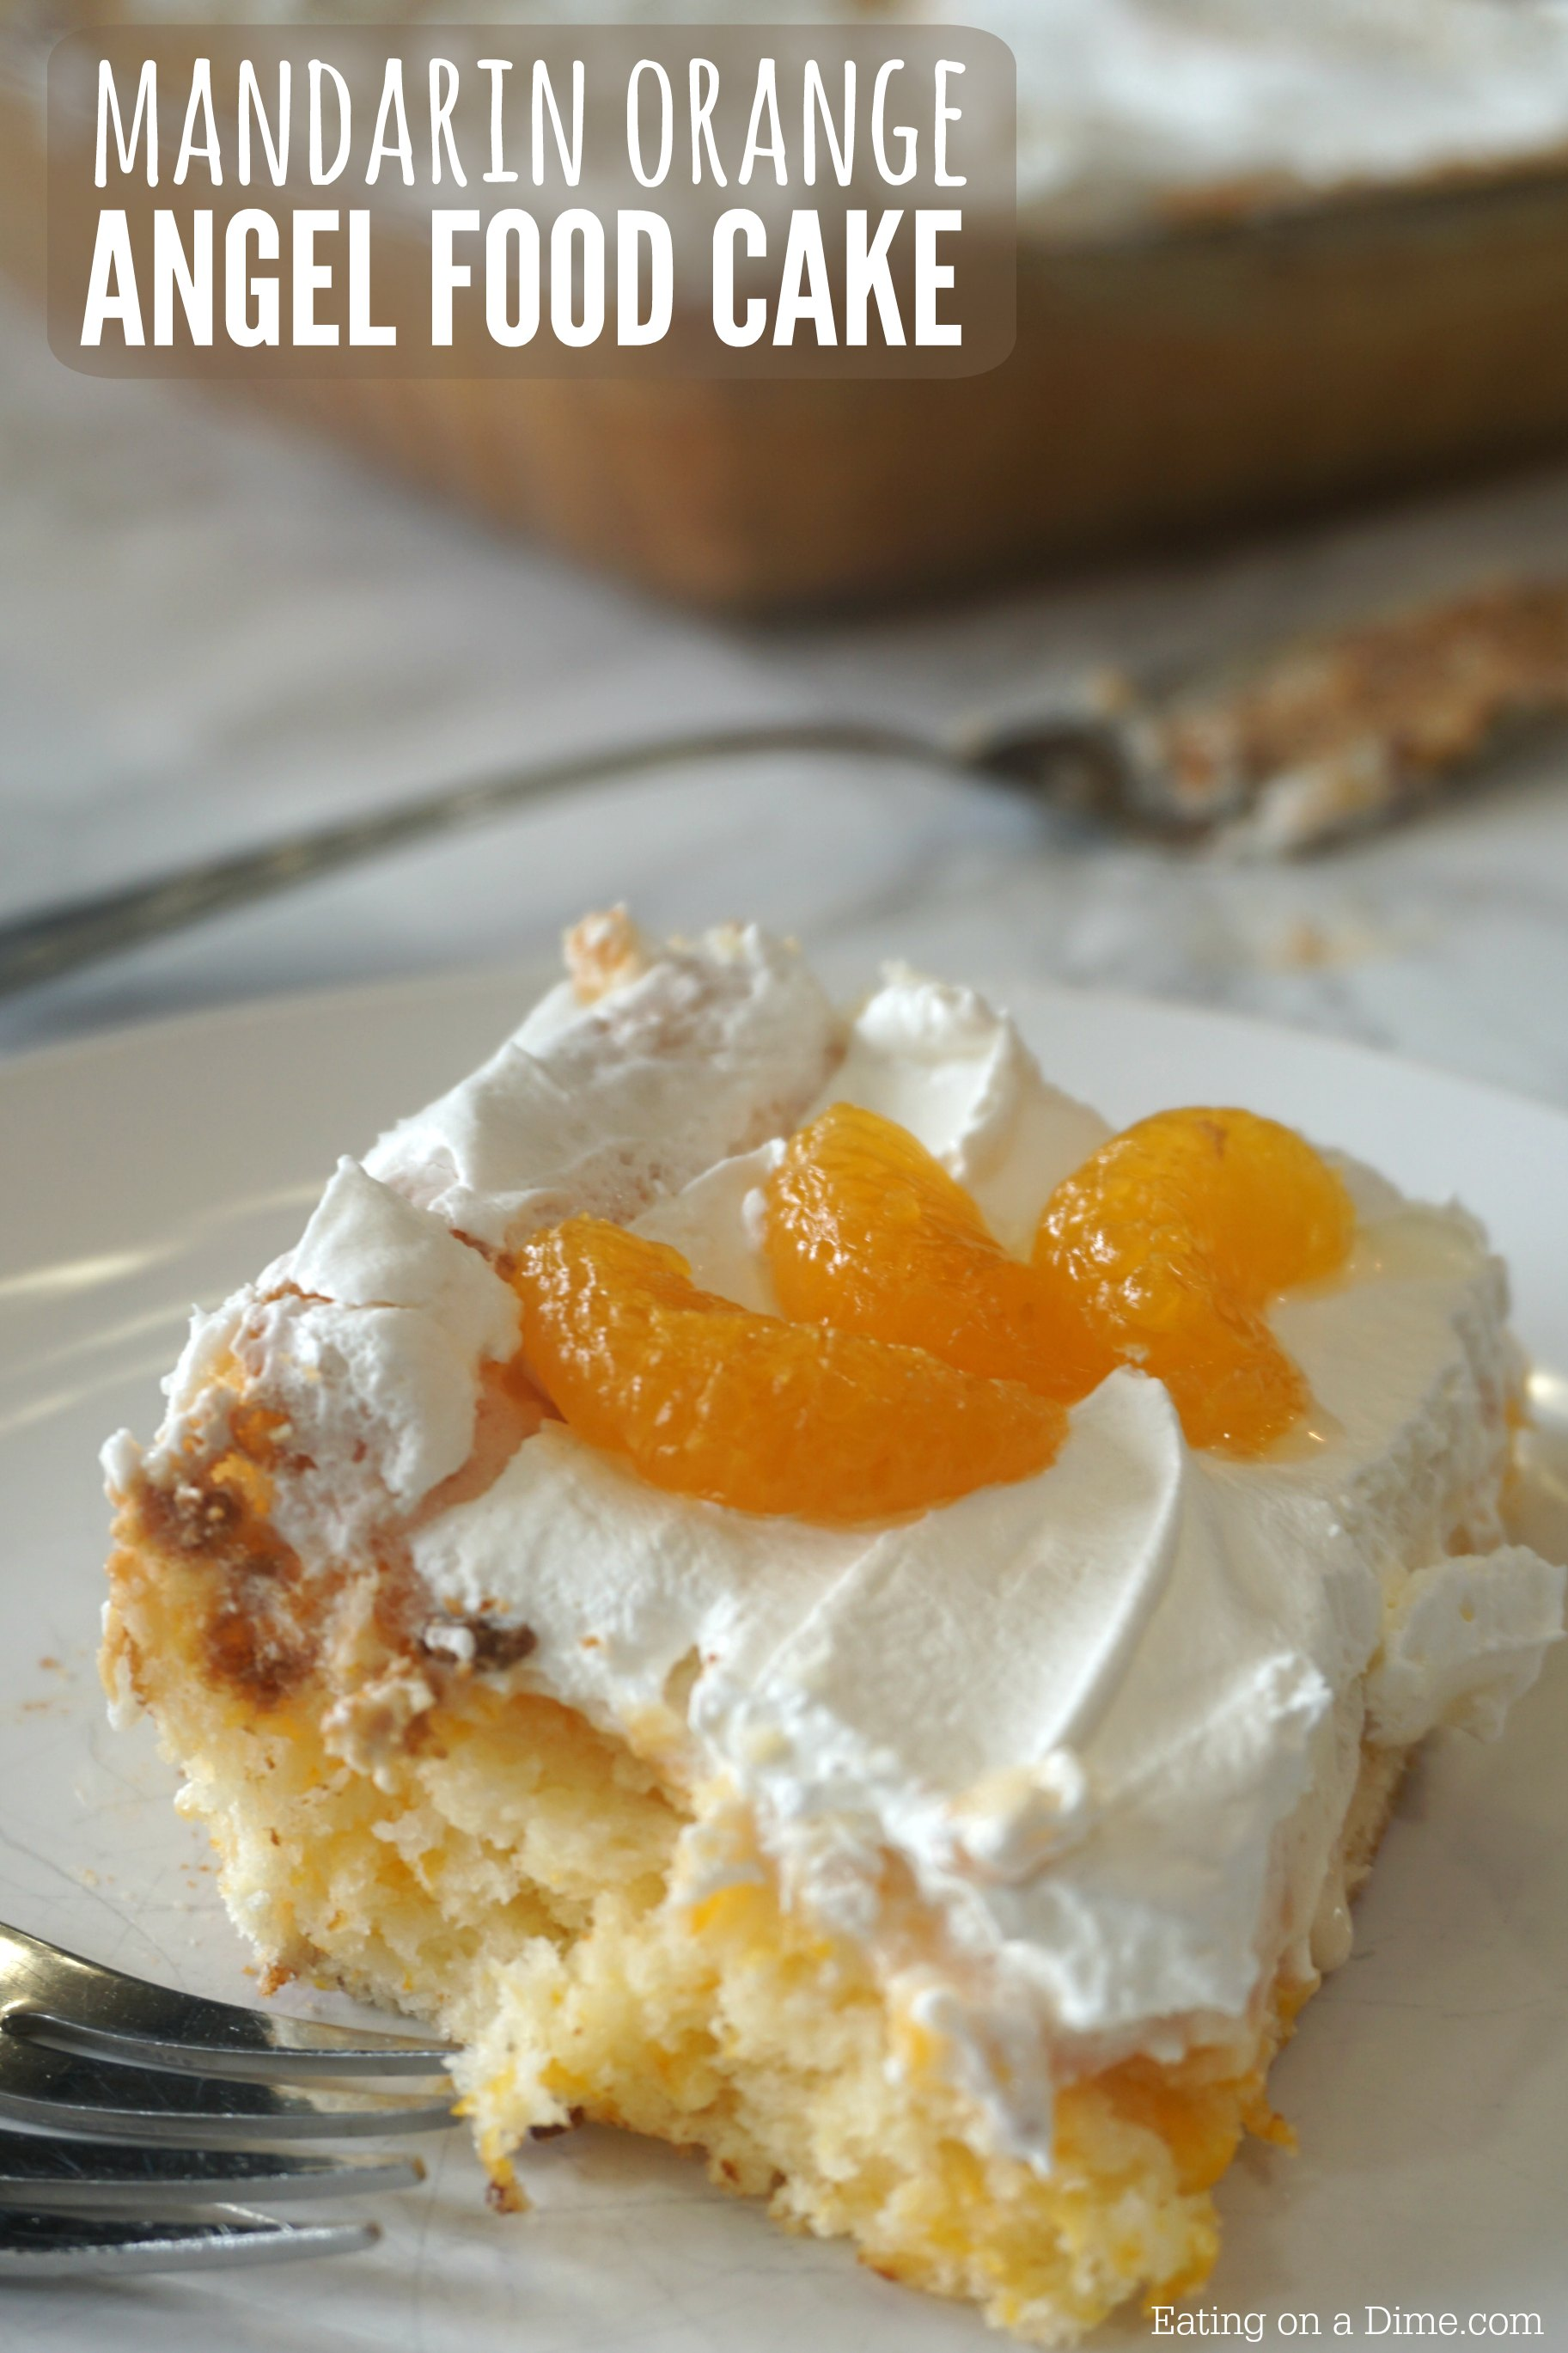 Mandarin orange angel food cake recipe easy angel food cake recipe you are going to be wowed by this super simple mandarin orange angel food cake recipe you just need 2 to 3 ingredients and this simple dessert comes forumfinder Image collections